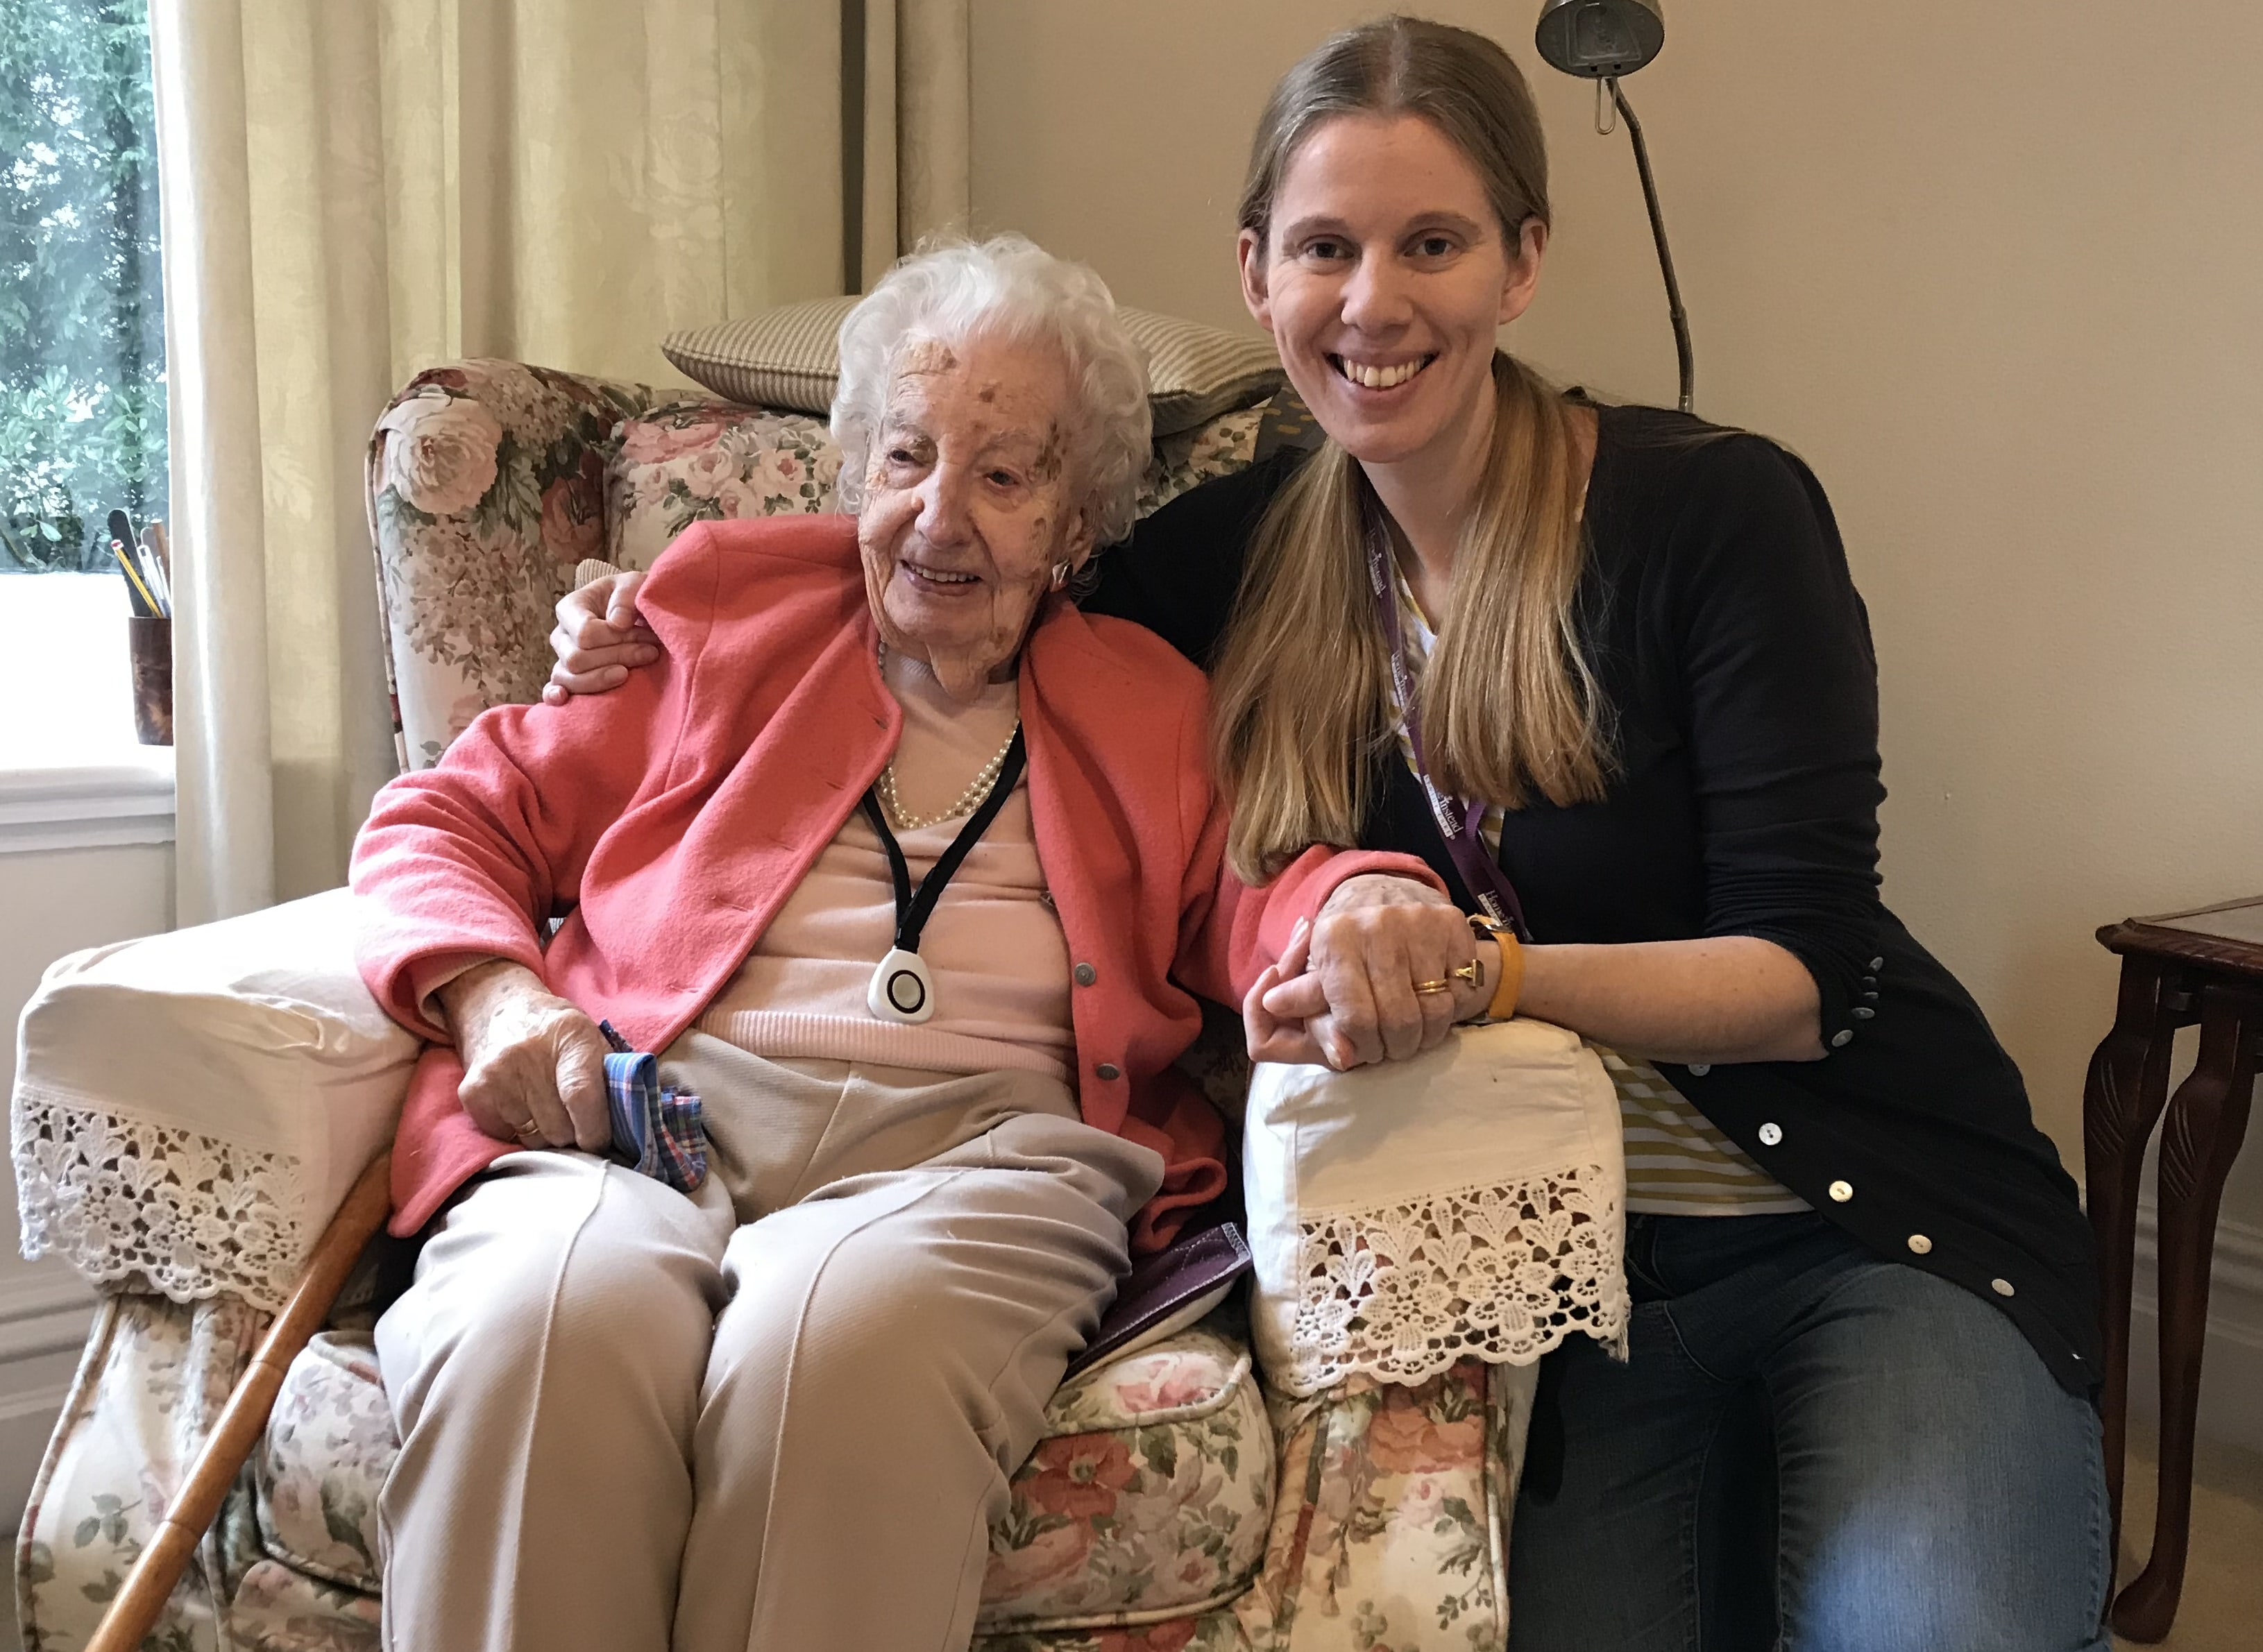 CAREGiver, children's author and knitting pro – all in a day's work